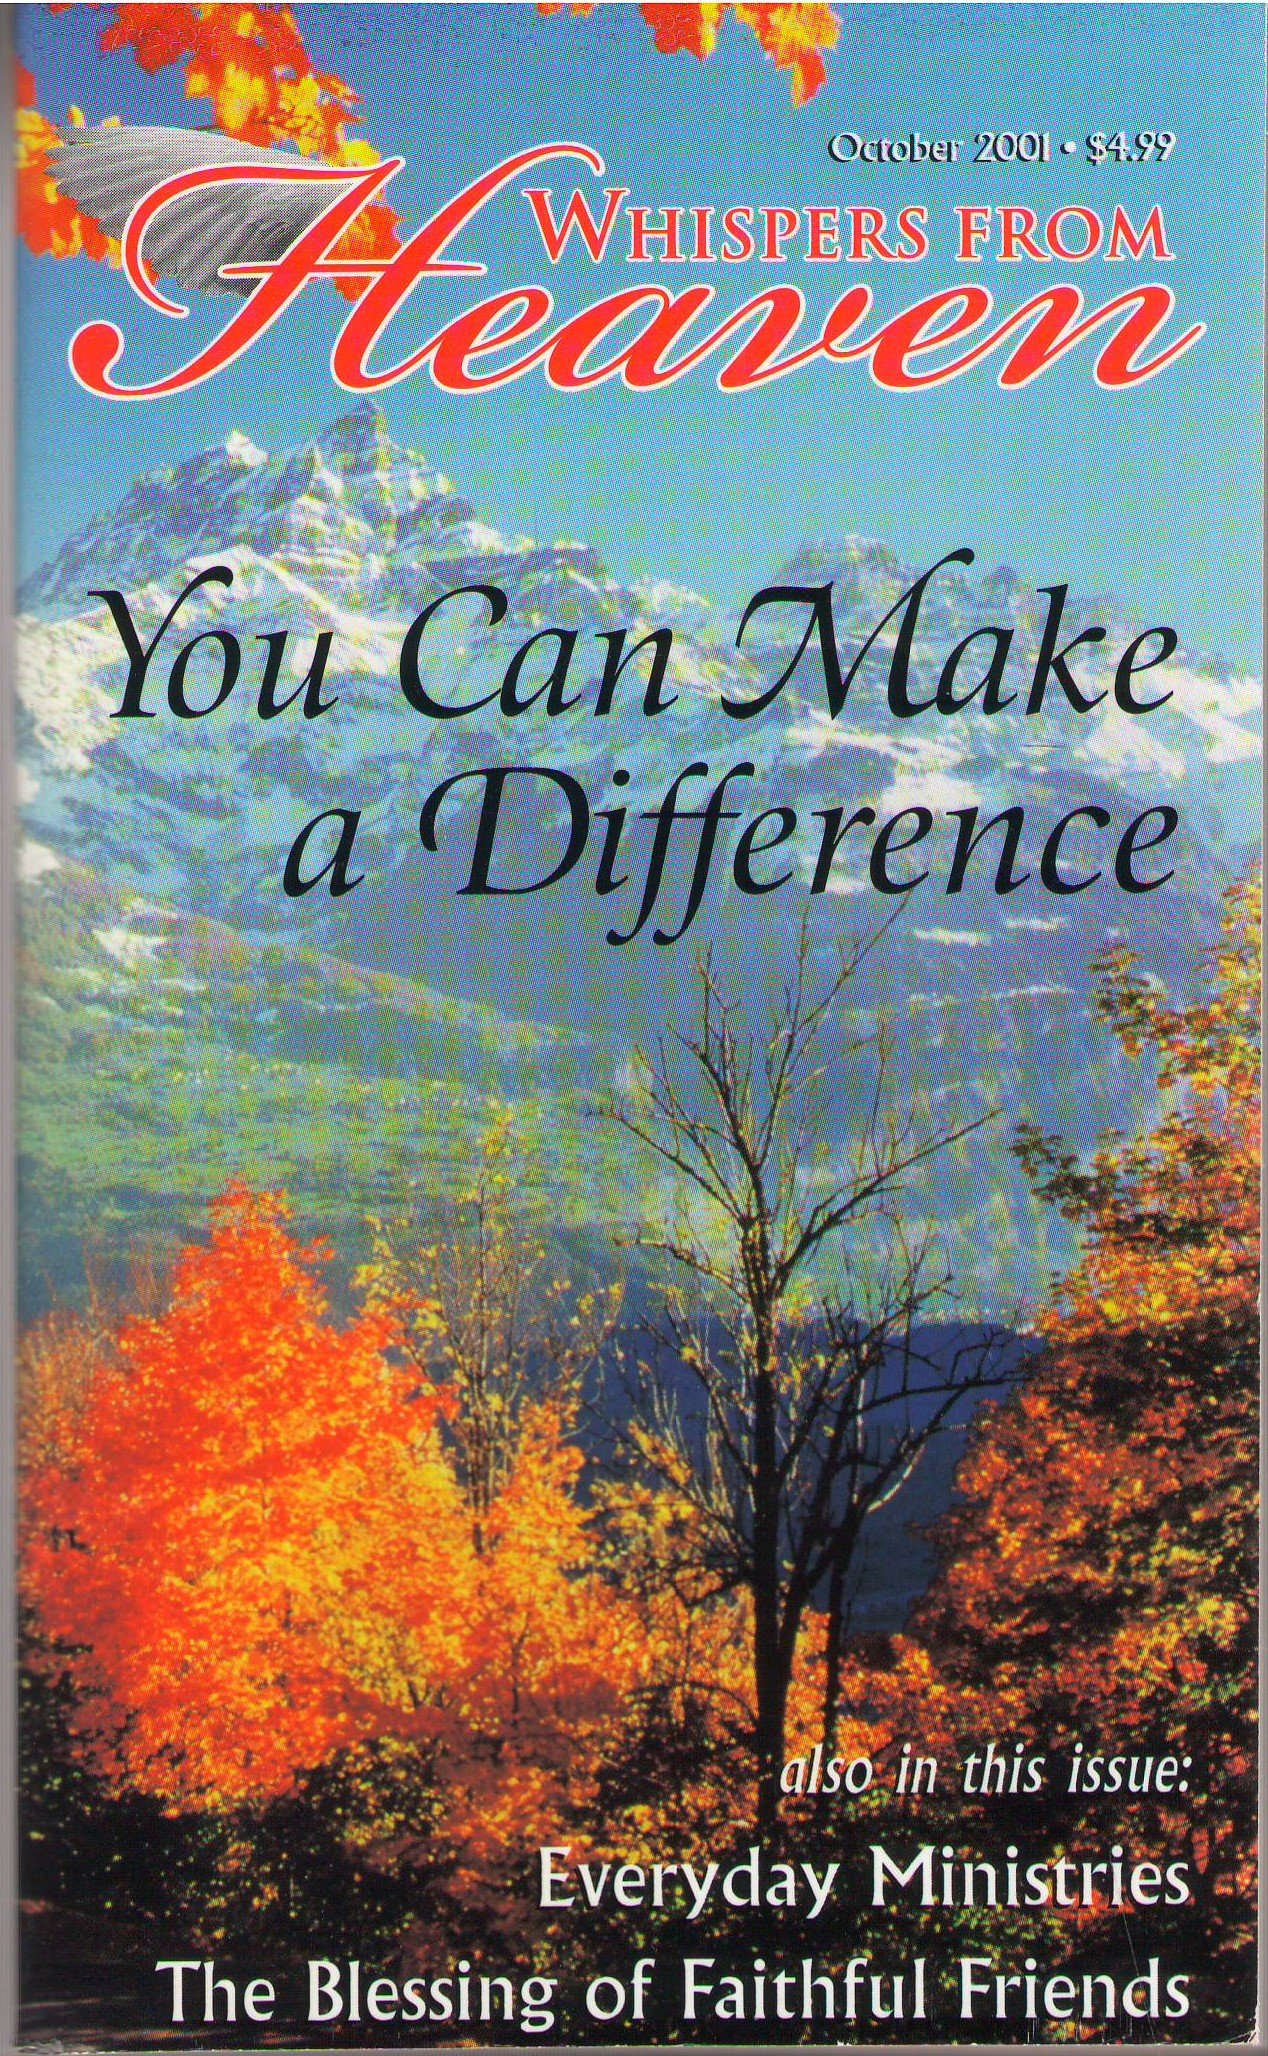 You Can Make a Difference (Whispers from Heaven Vol. 3 Issue 17 Oct 2001) ebook